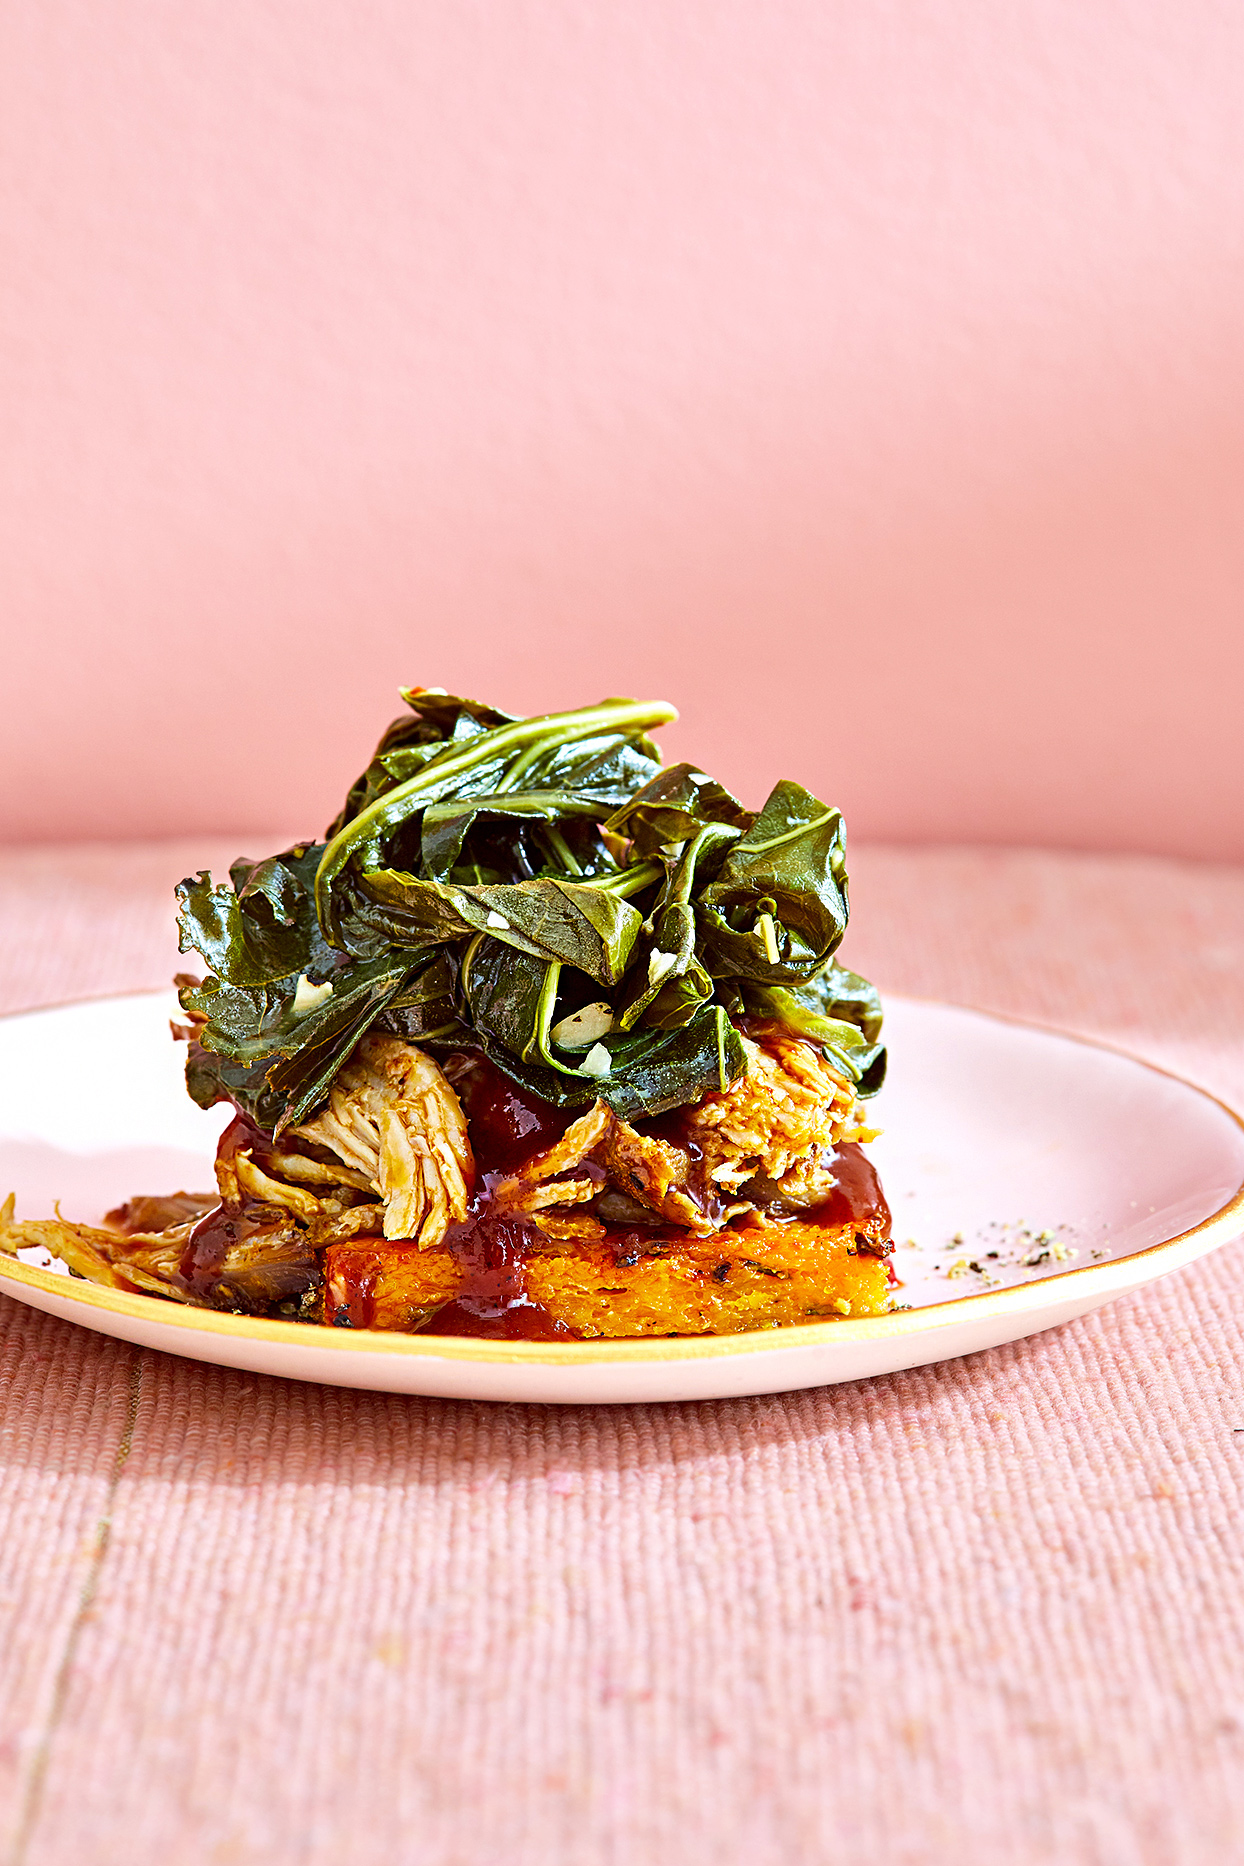 Roasted Pulled Pork on Cheesy Grits Cakes with Collards